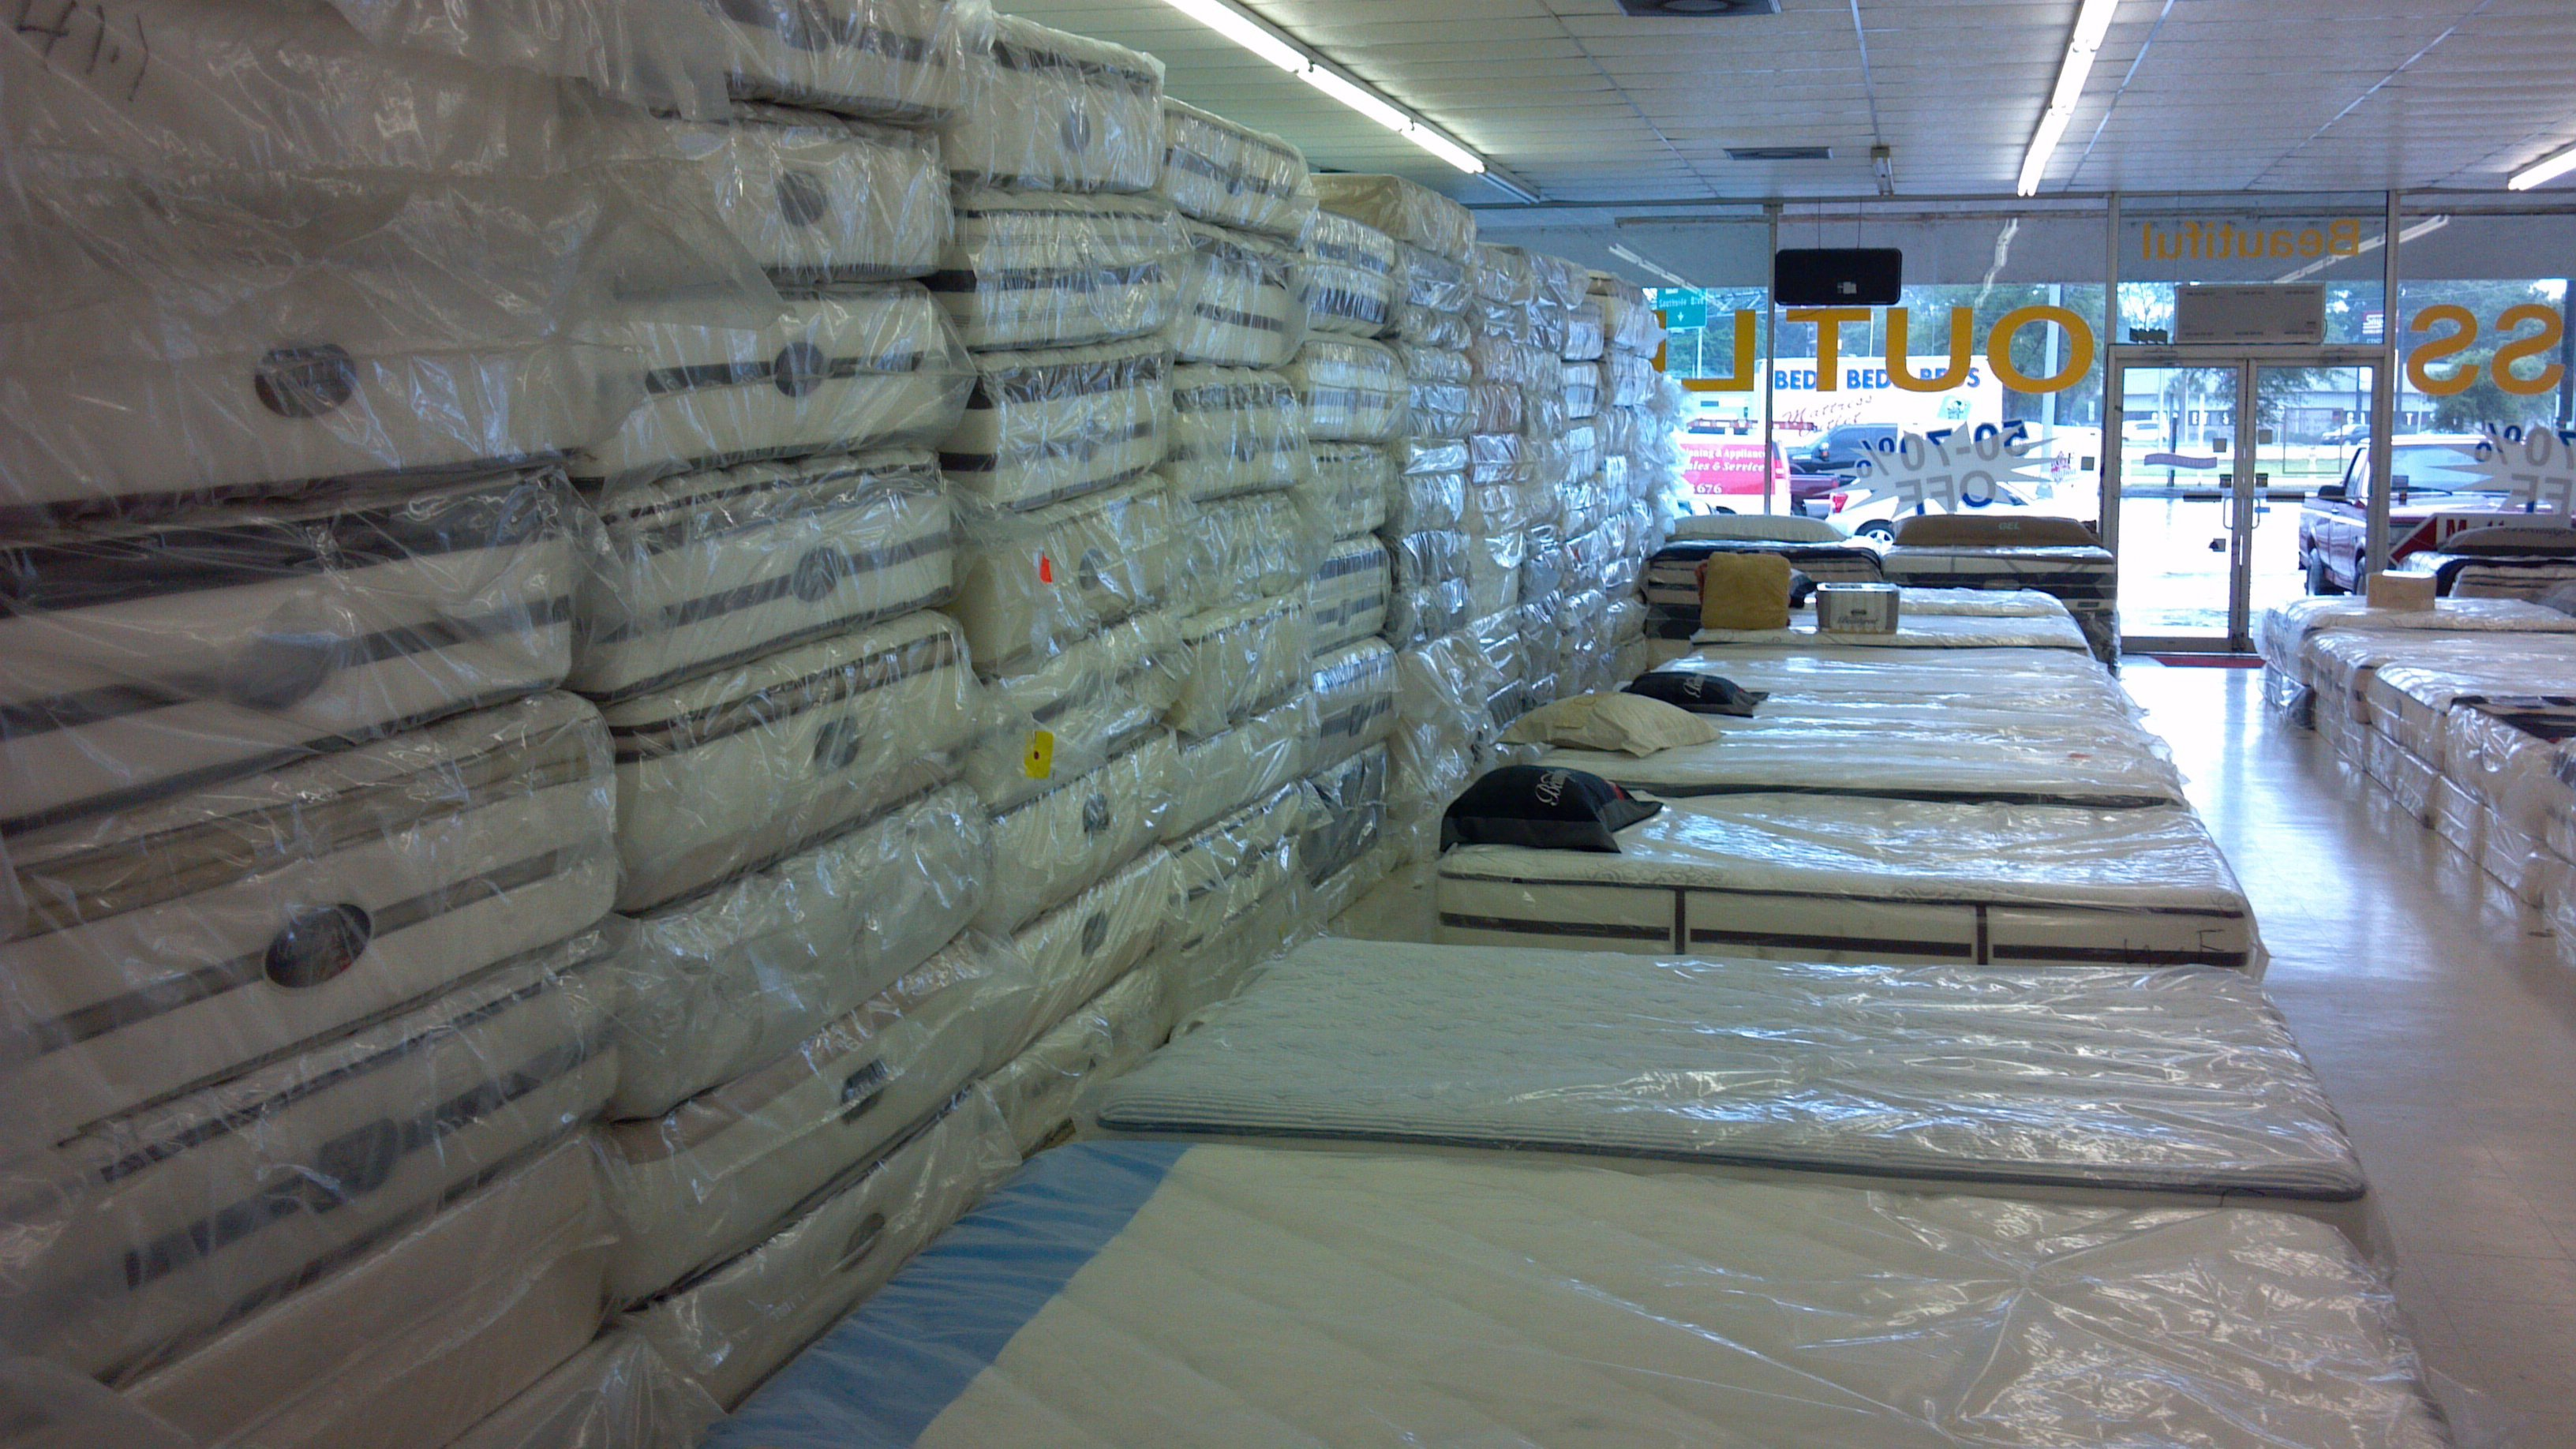 Low Price Mattresses Jacksonville, FL